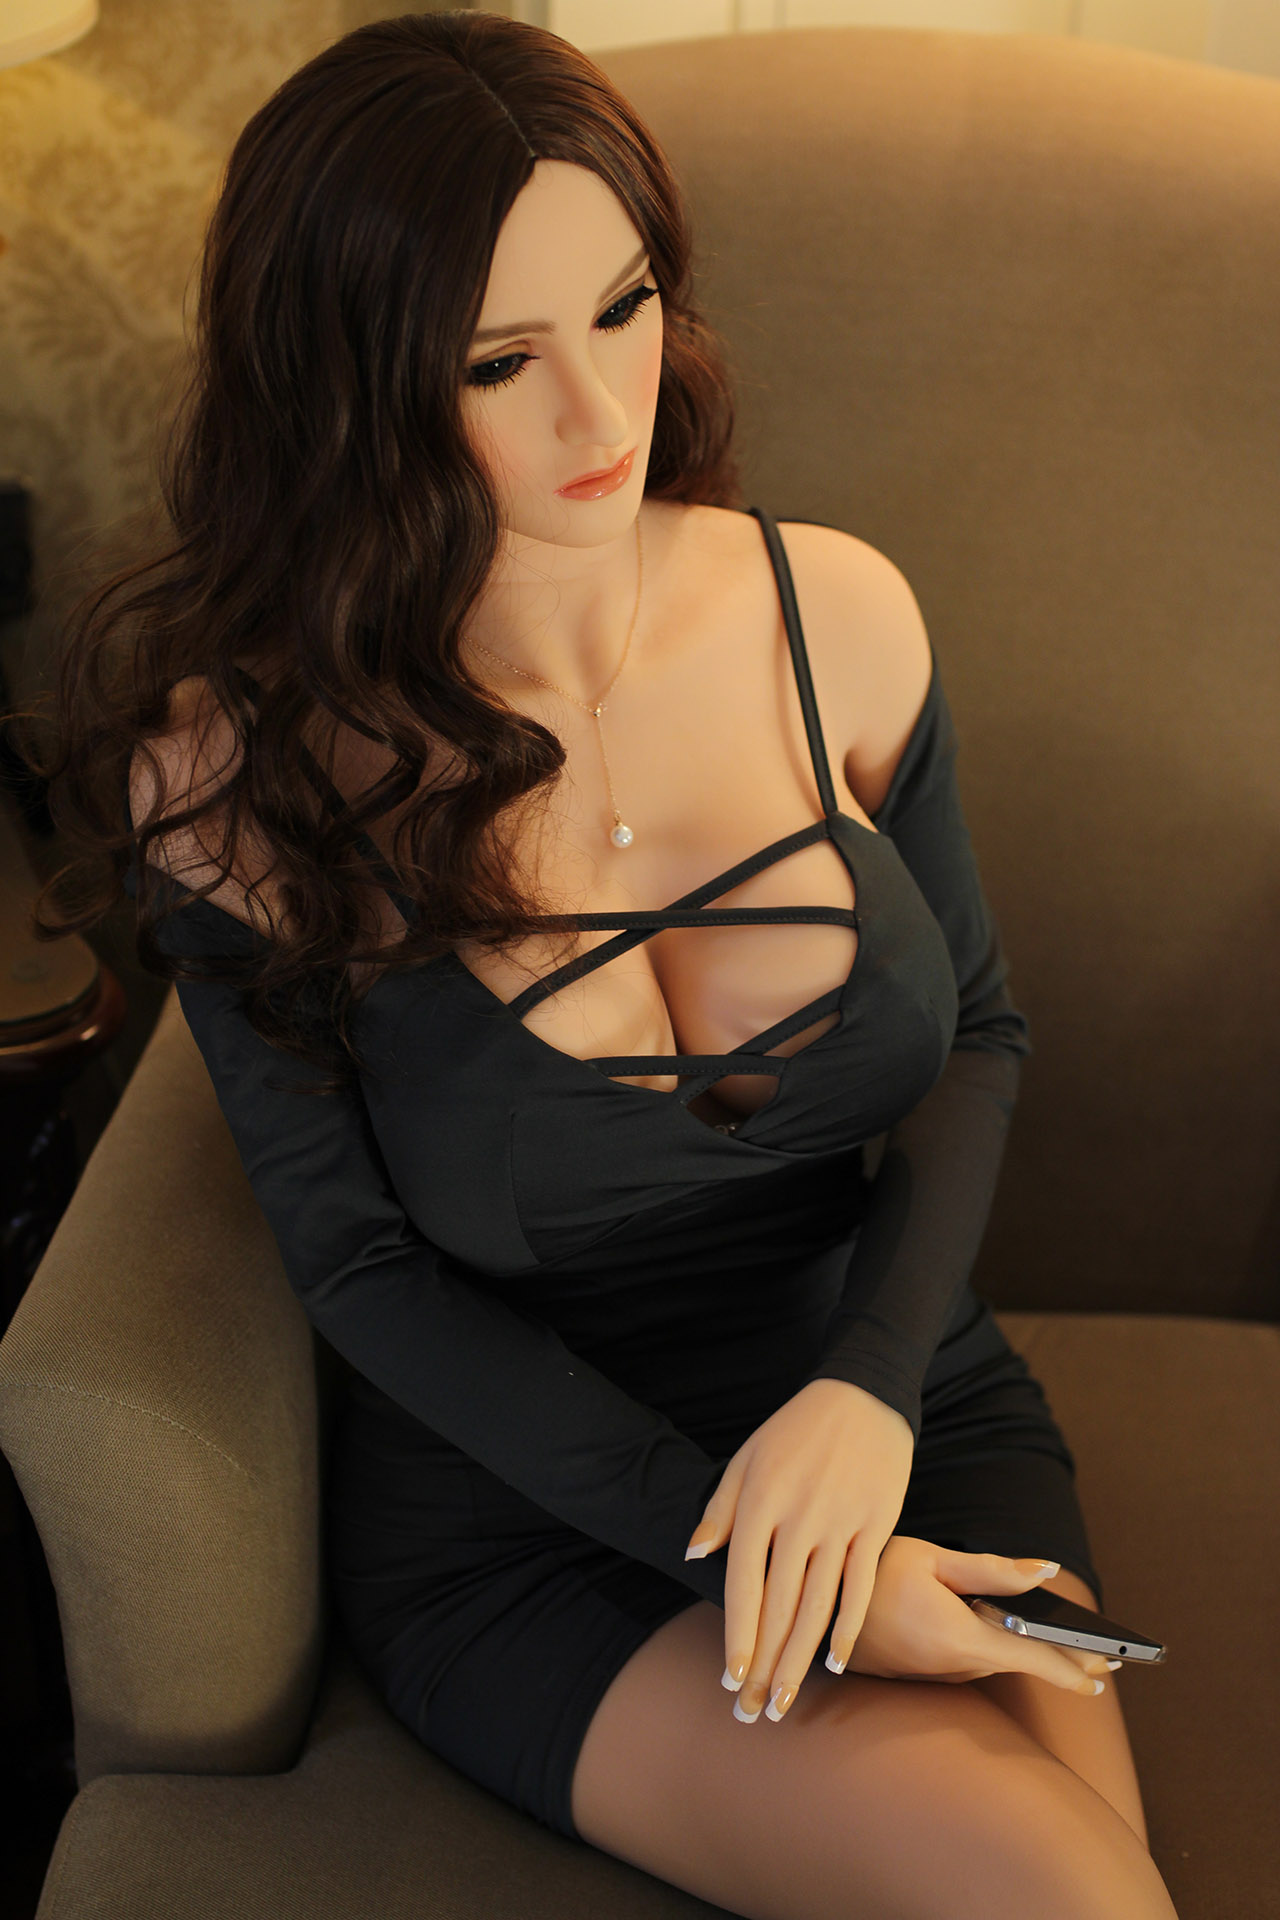 poupée maiden doll real love dolls silicone sex doll realiste adulte taille reelle 64 - Sex doll en france Adopte une doll